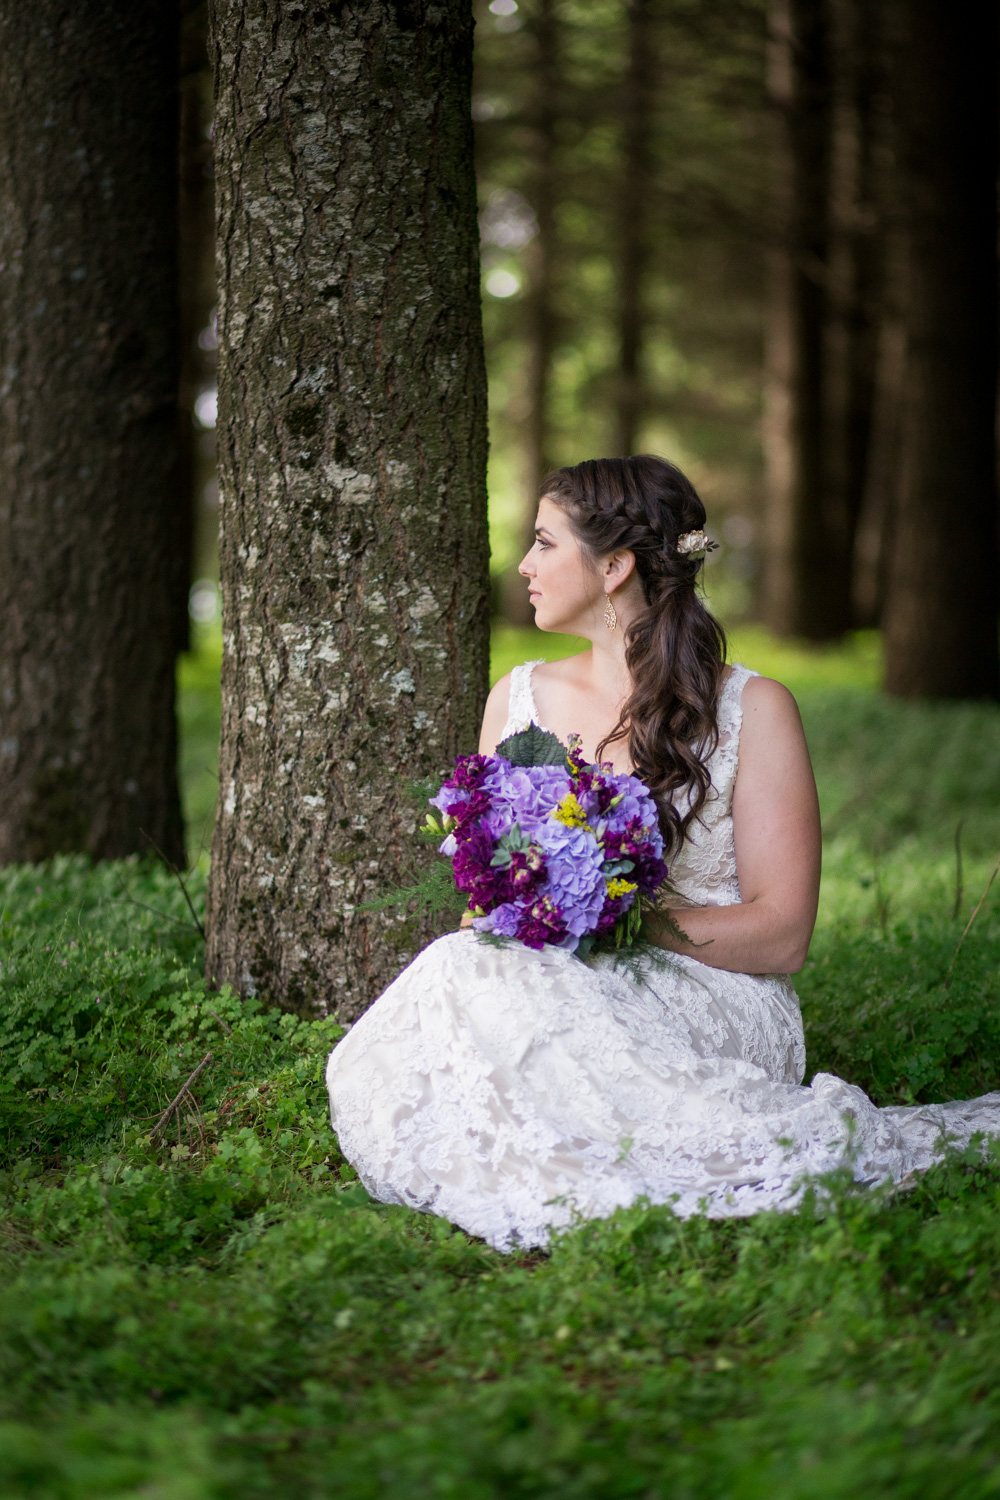 Dallas Oregon Wedding Photography Focal Point Studios-173.jpg